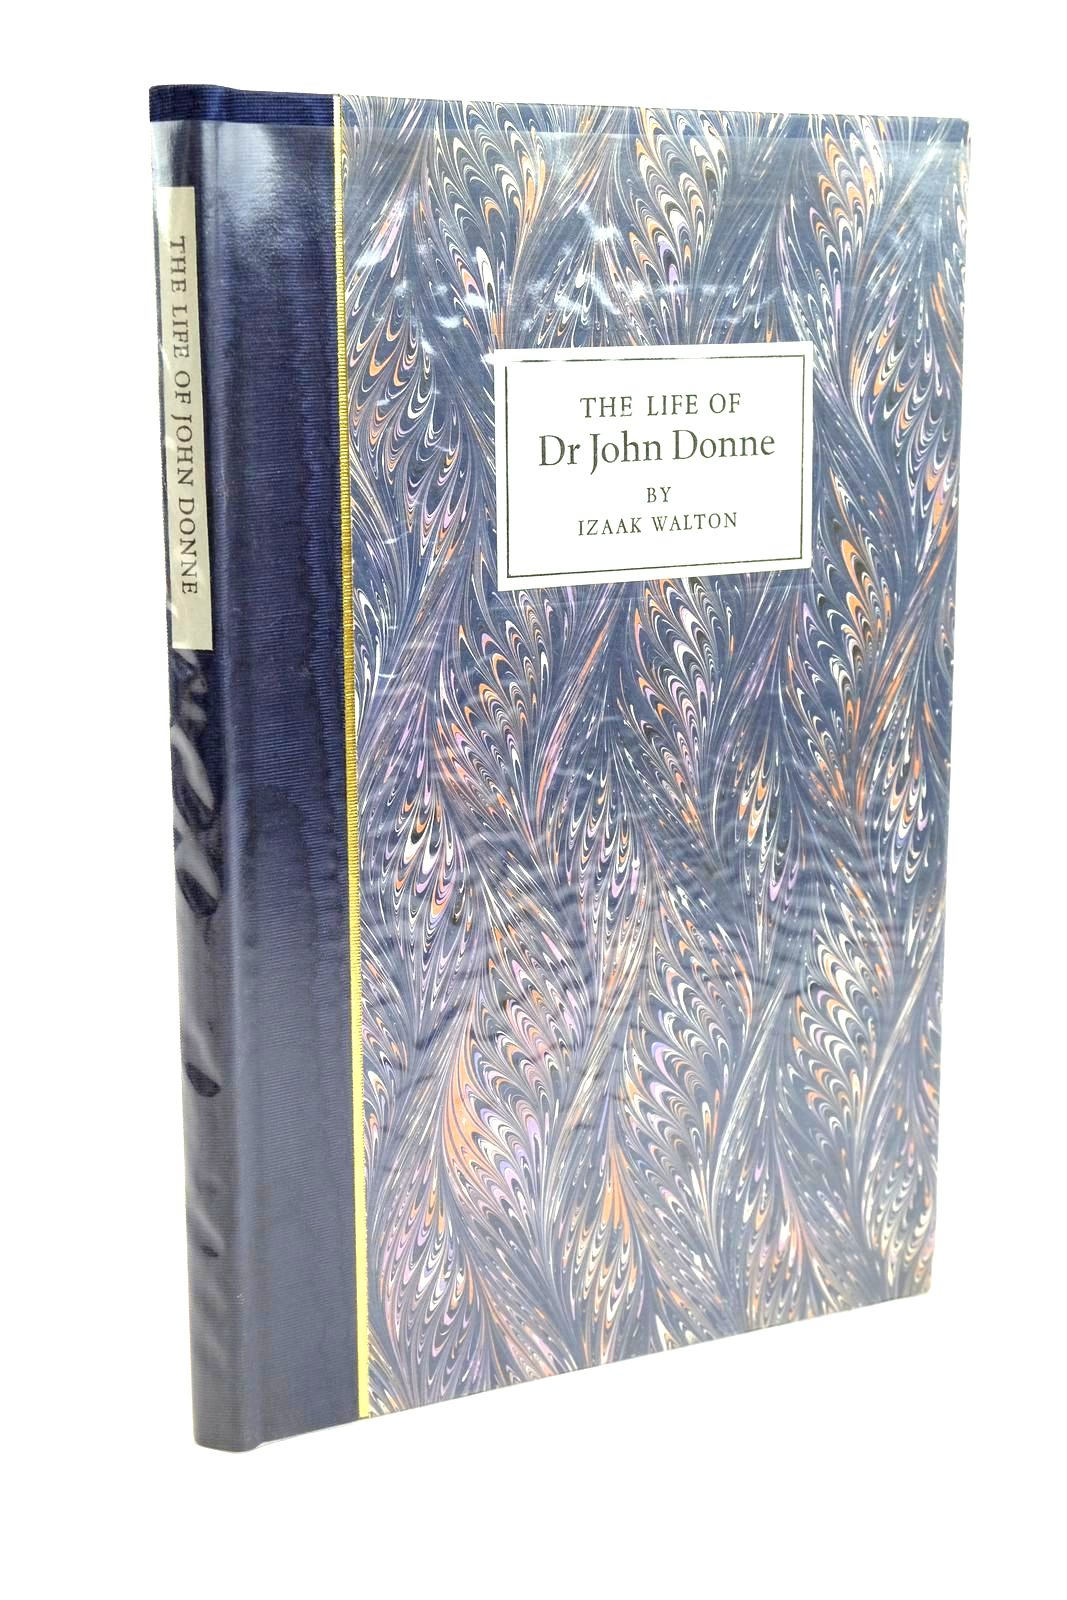 Photo of THE LIFE OF DR JOHN DONNE written by Walton, Izaak Ward, Colin published by Folio Society (STOCK CODE: 1320398)  for sale by Stella & Rose's Books